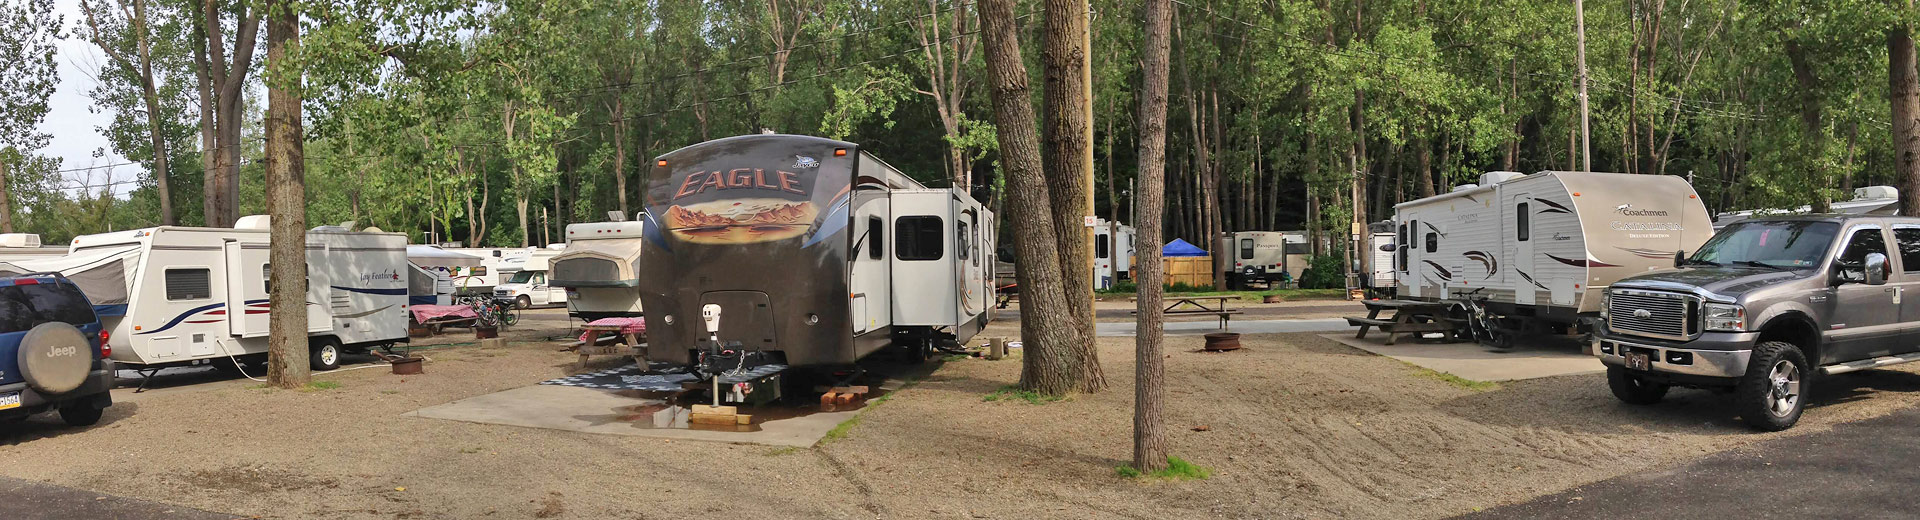 RV campsites at Sara's Campground